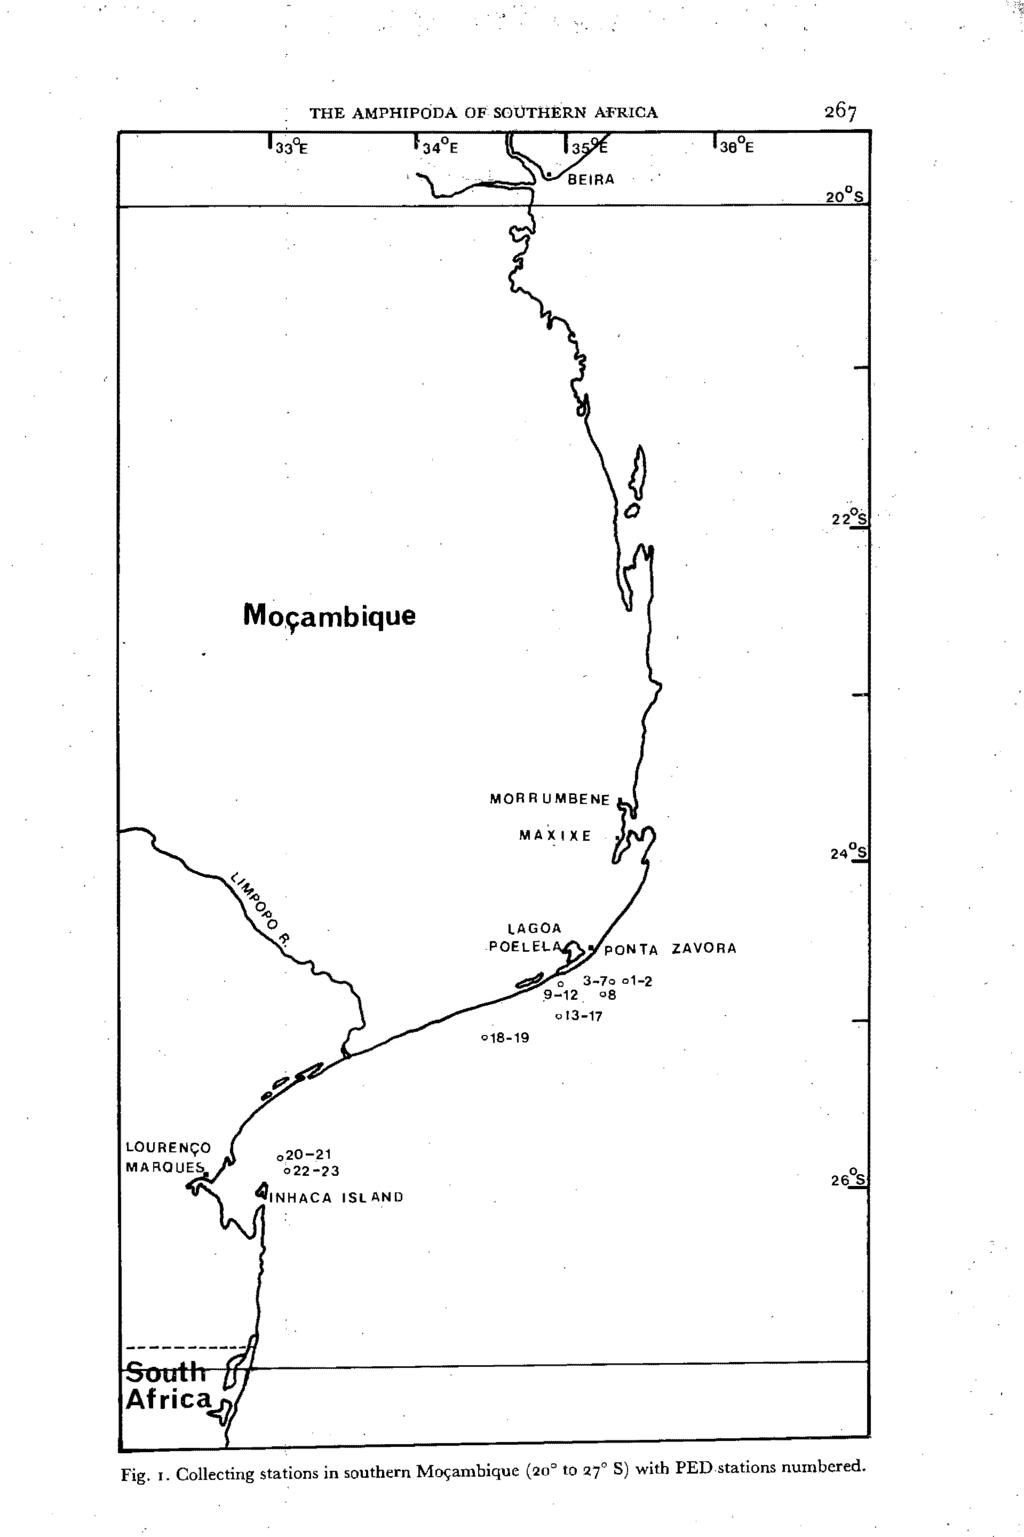 THE AMPHIPODA OF SOUTHERN AFRICA Mo,~ambique MA)(lXE ZAVORA 018-19 013-17 08 Fig. I.